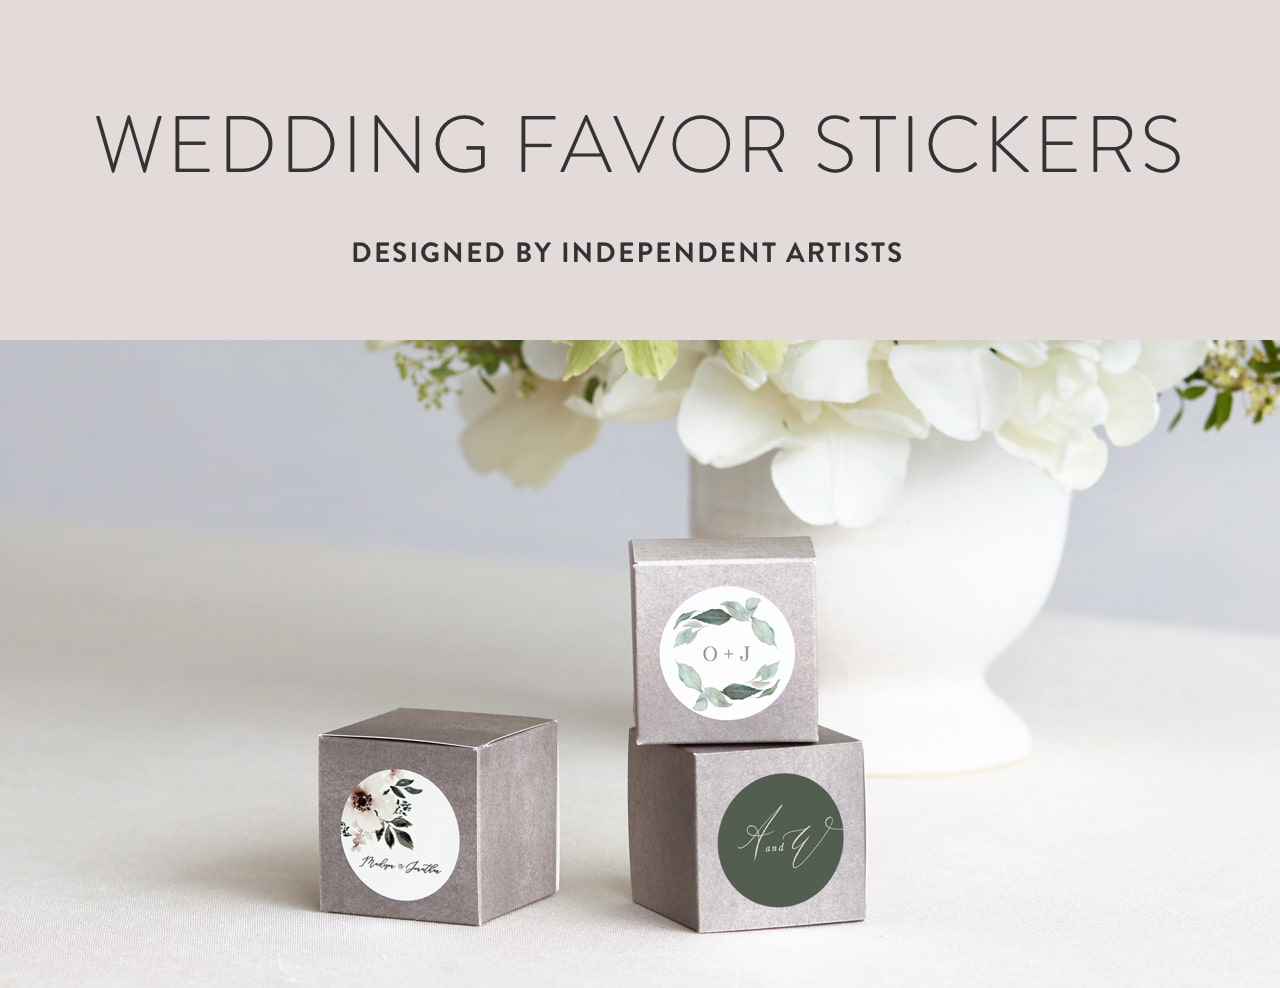 Wedding Favor Stickers